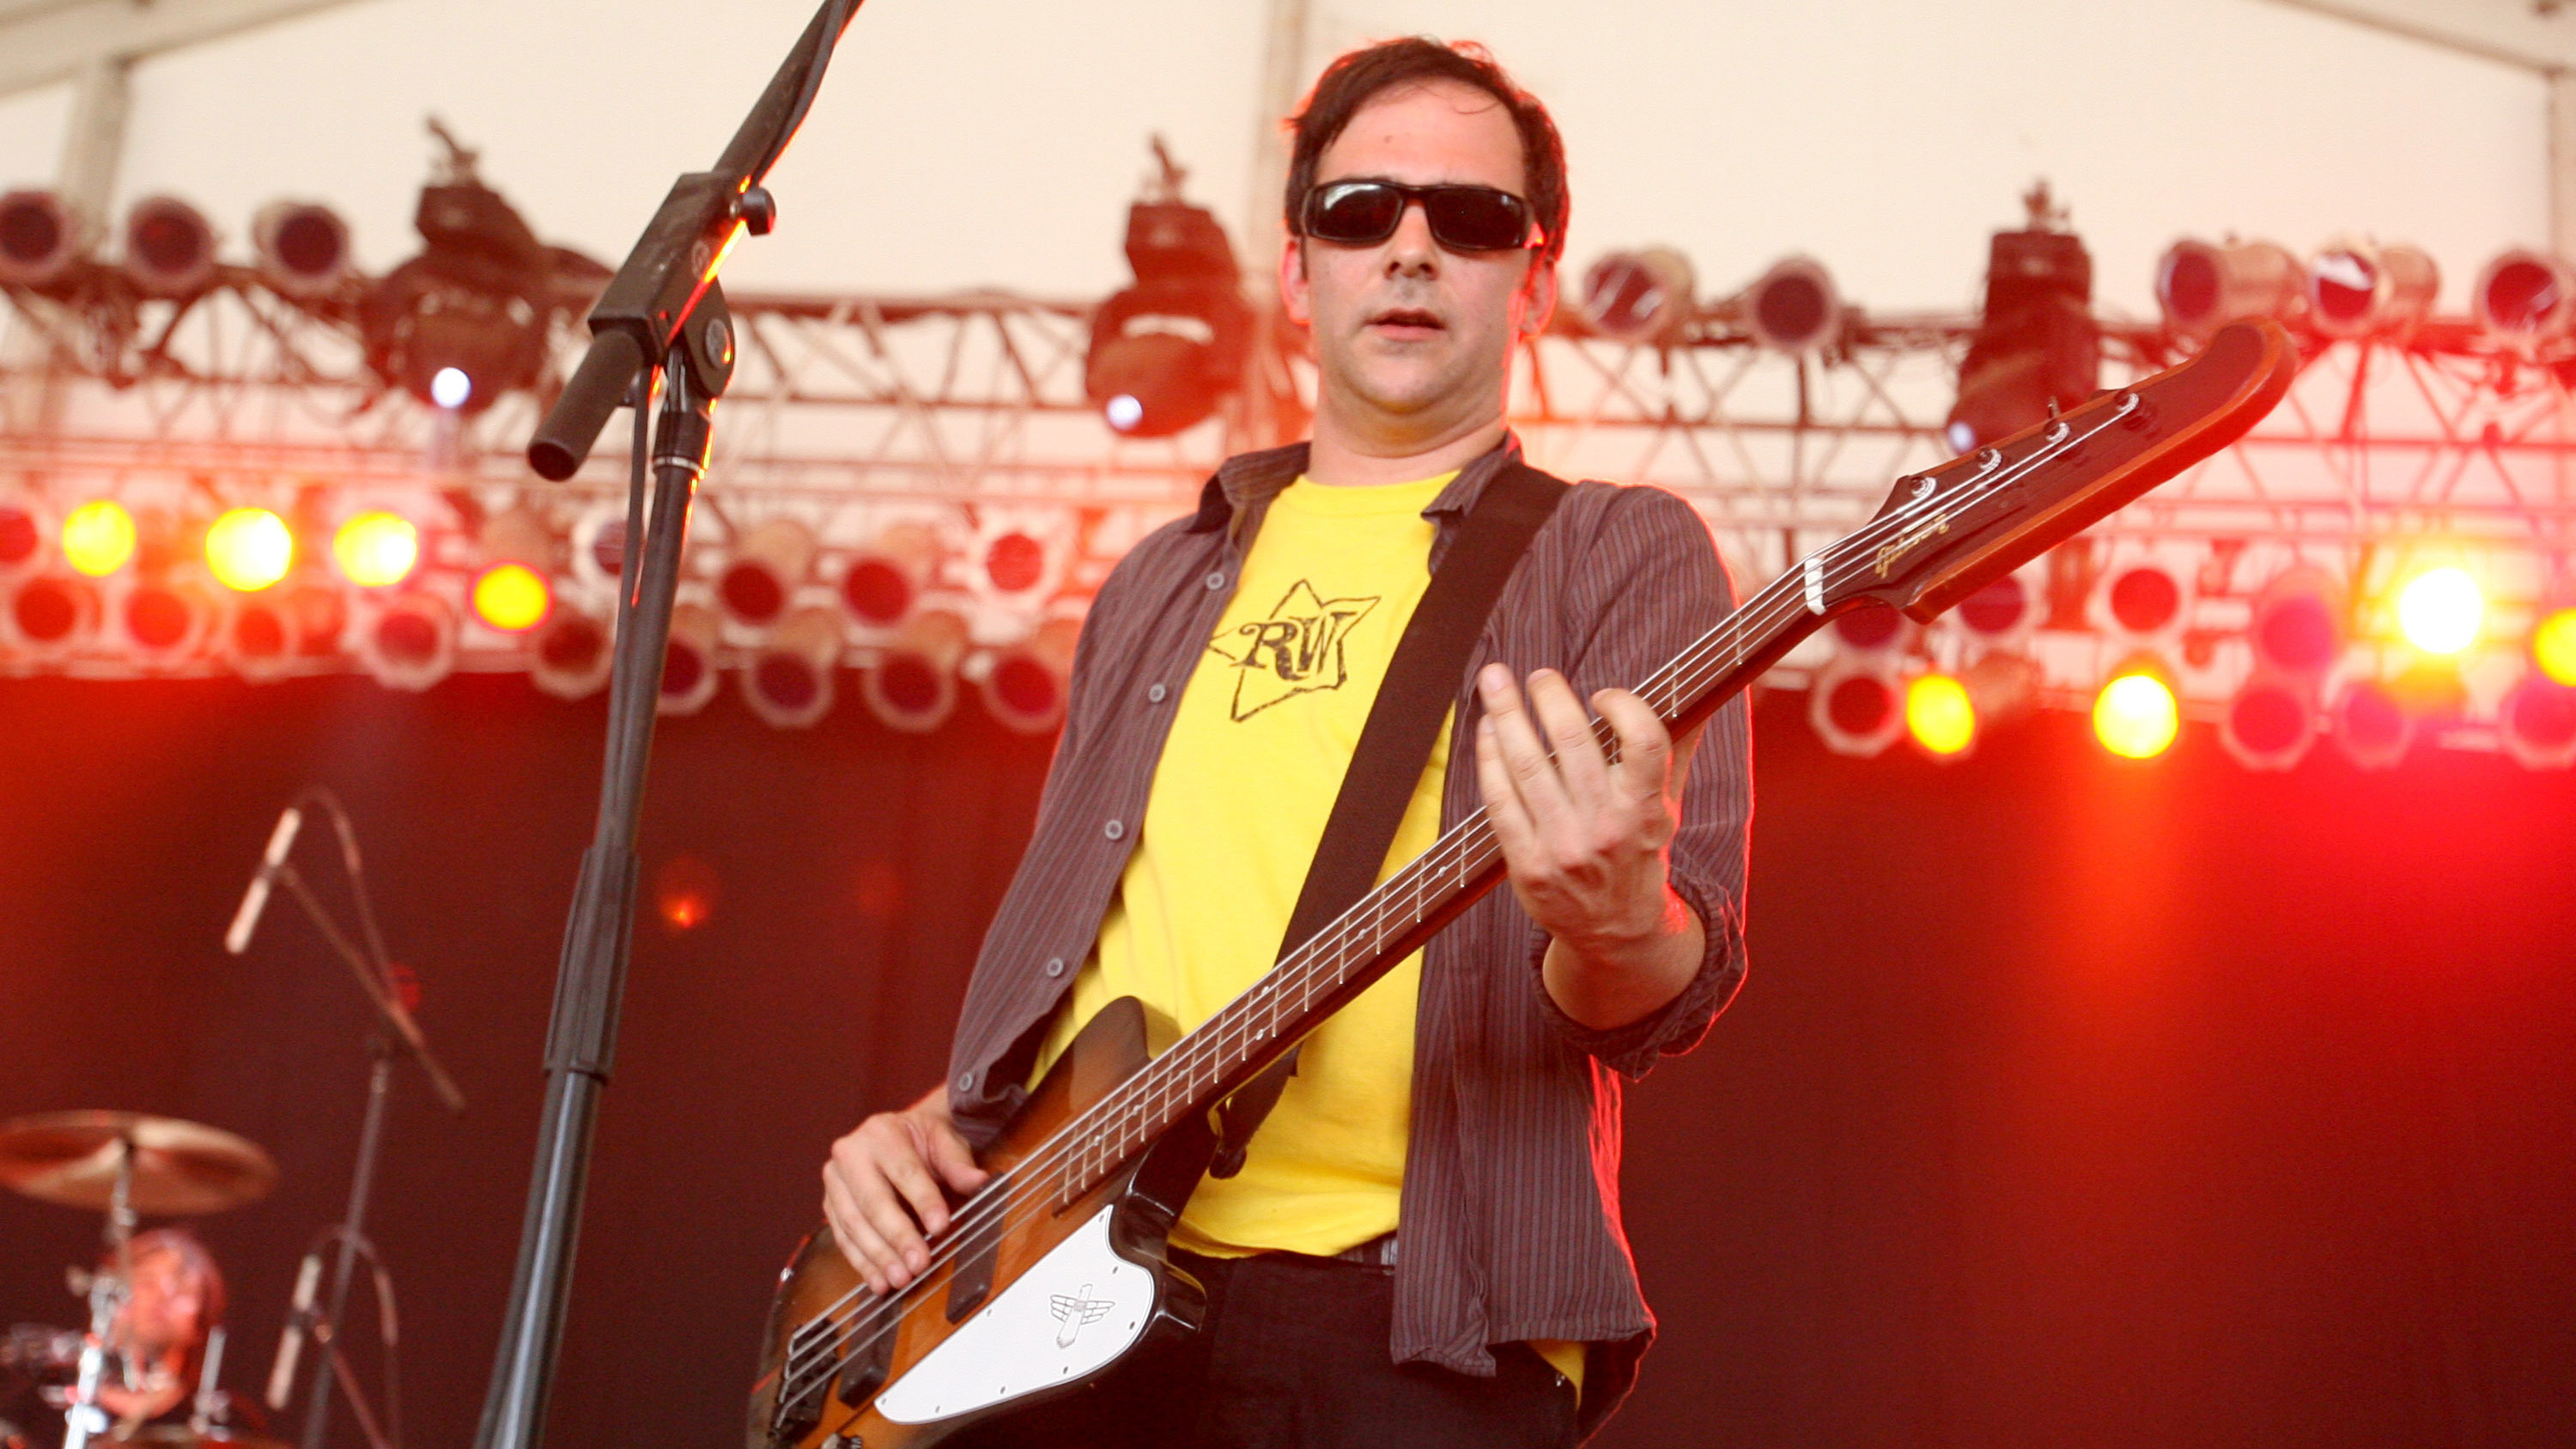 Adam Schlesinger of Fountains of Wayne performs at the Bonnaroo Music & Arts Festival in 2007.